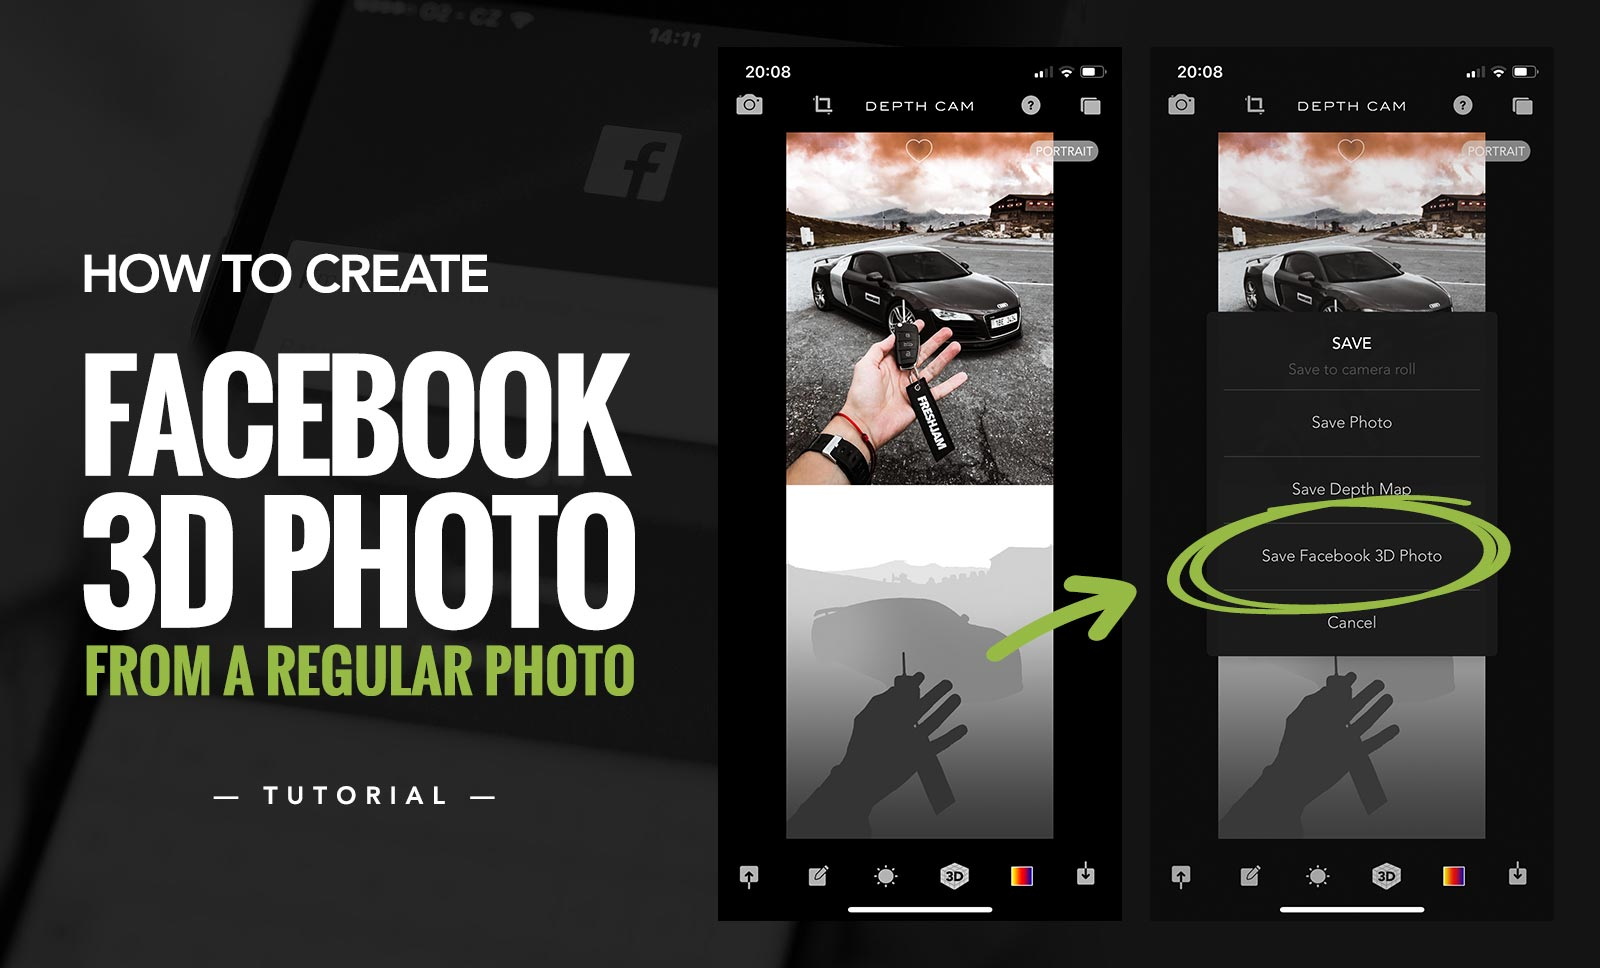 picjumbo BLOG: How To Create Facebook 3D Photo From a Regular Photo